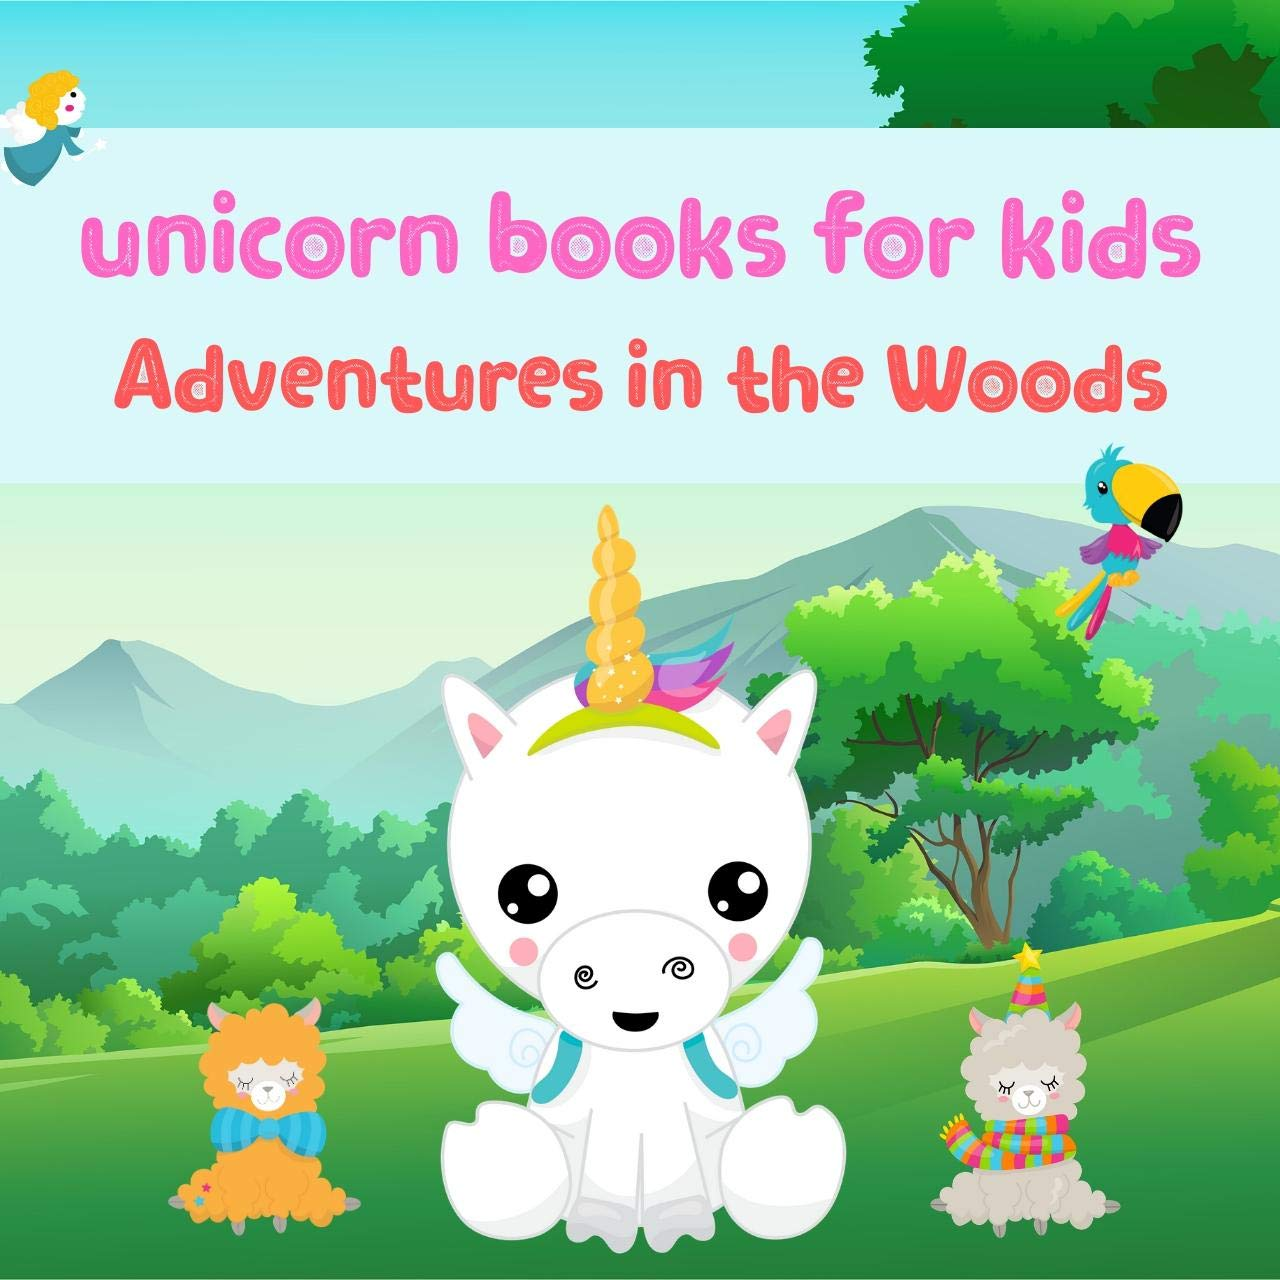 unicorn books for kids: Adventures in the Woods Kids Book, Picture Books, Ages 3-5, Ages 2-6, Preschool Books, Baby Books, Children's Bedtime Story (Unicorn Adventures Book 5)